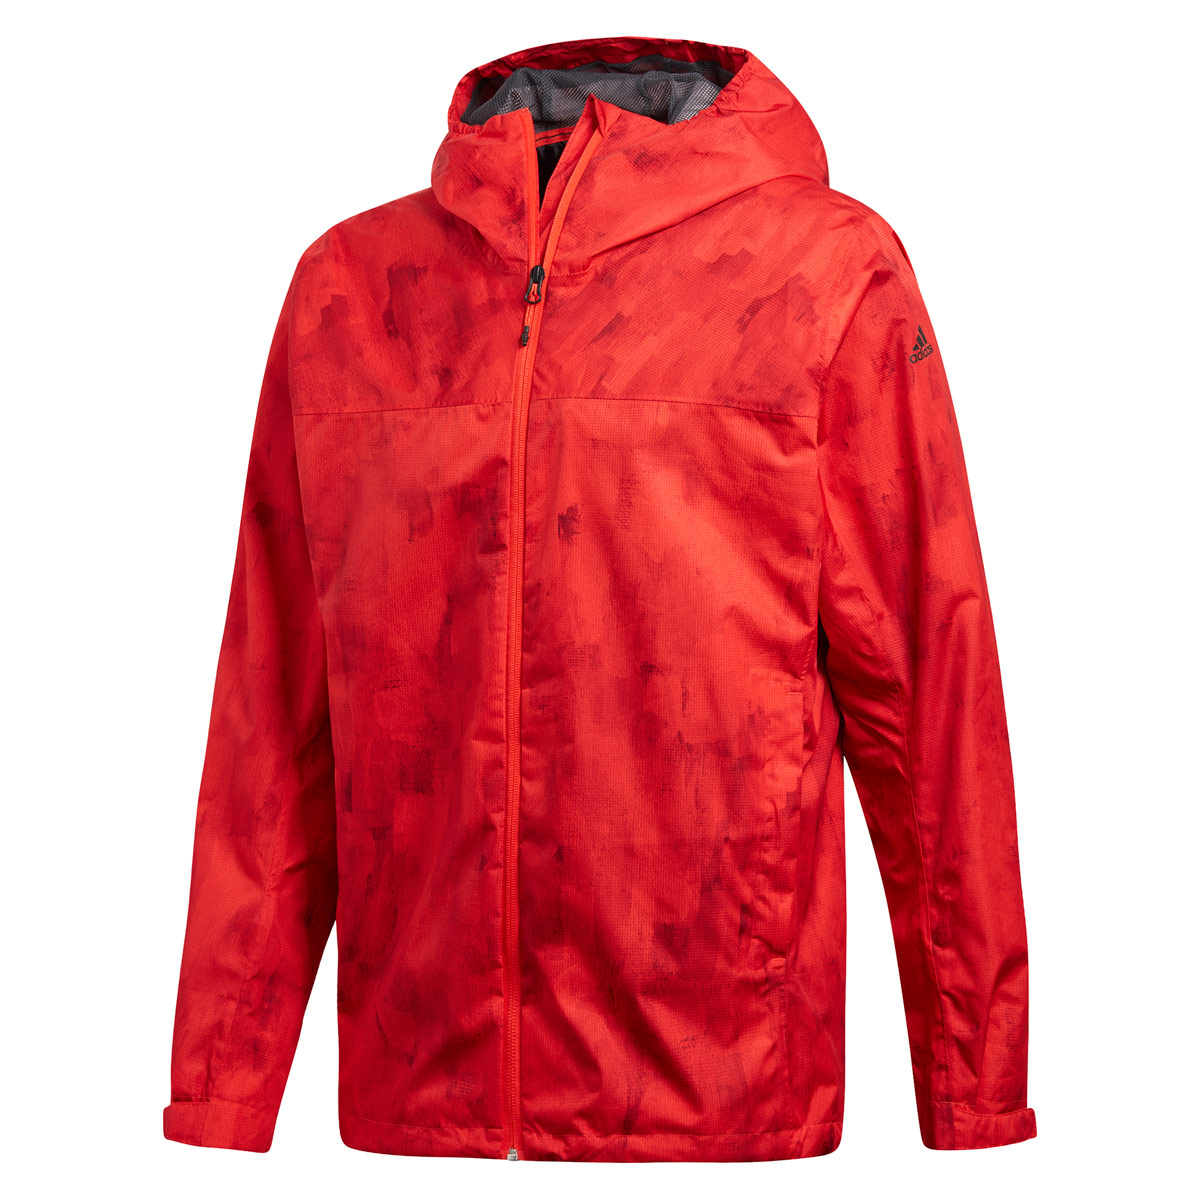 adidas Wandertag Allover Print Jacke Casual clothing for Men Red